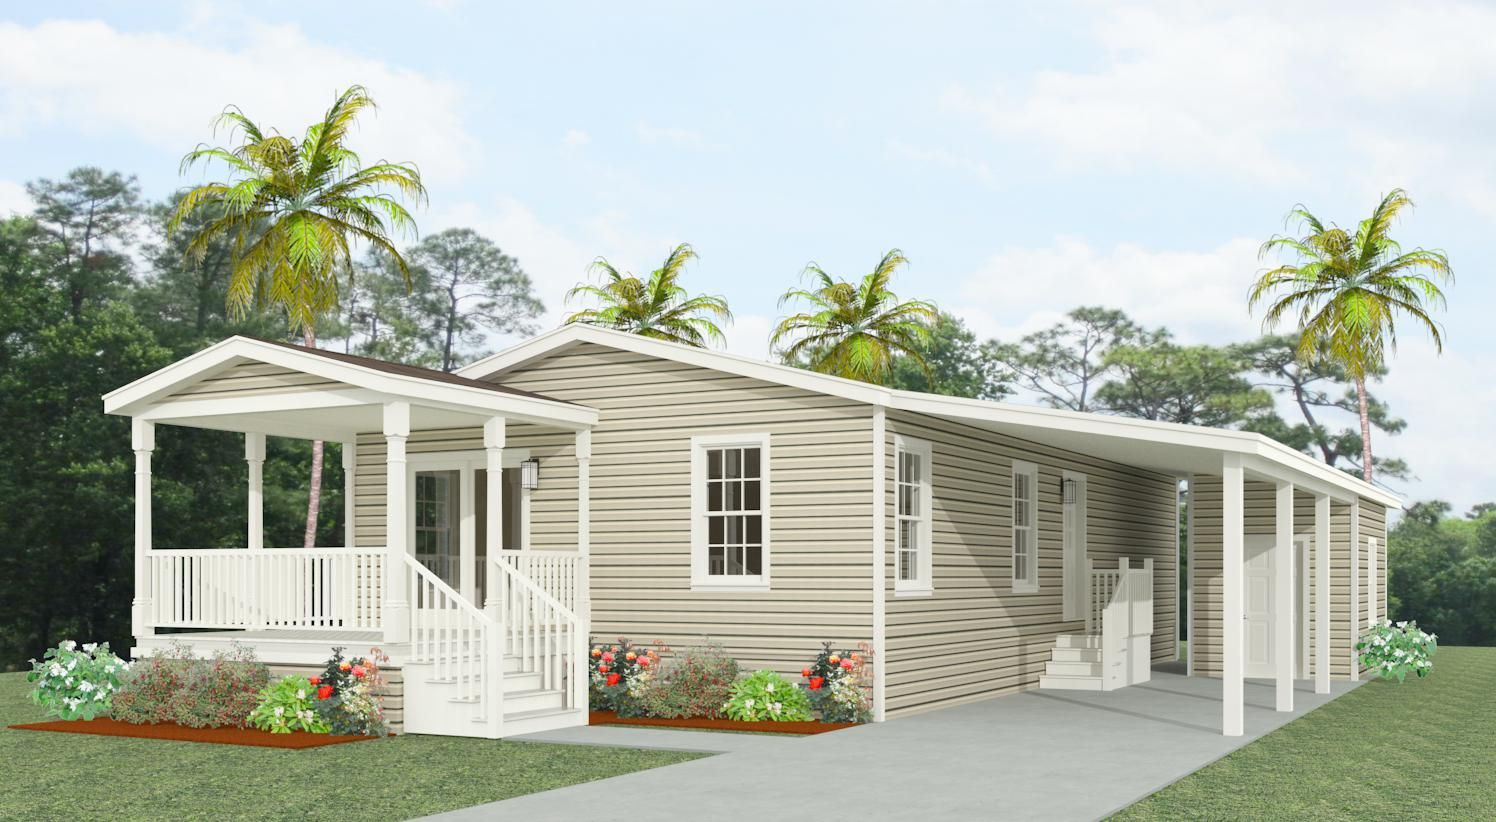 Floor Plans Manufactured Homes Modular Homes Mobile Homes Jacobsen Homes Manufactured Homes Floor Plans Manufactured Home Porch Porch Design